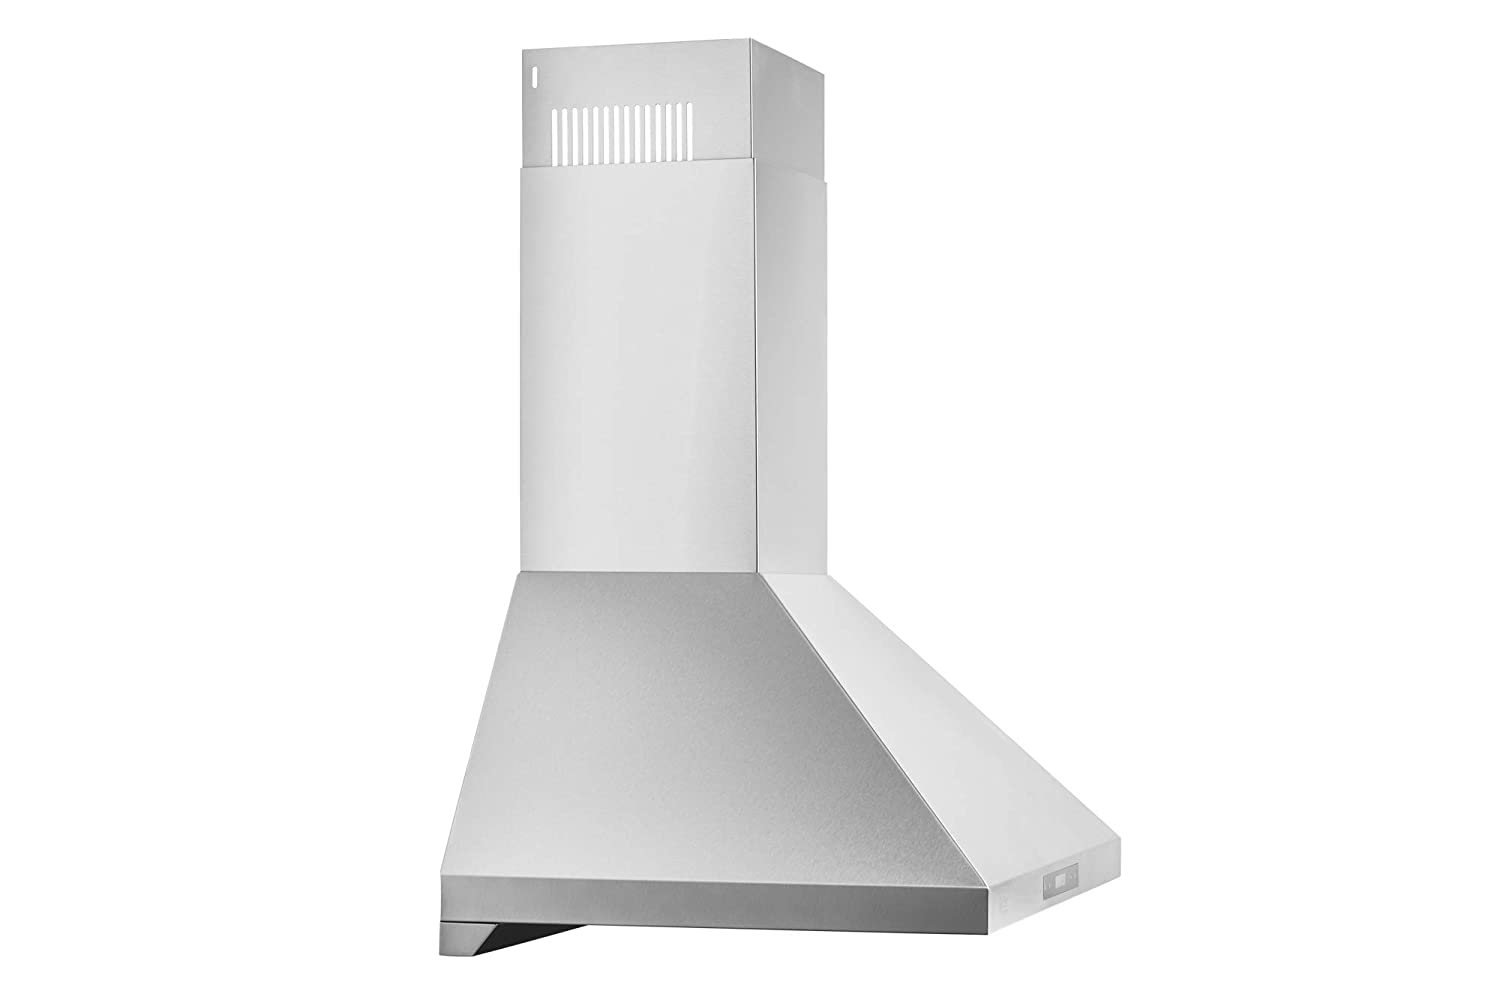 EUROPEAN STYLE SERIES 36 860 CFM Duct or Ductless Options Touch Screen Chef Range Hood WM-538 Easy Clean Baffle Filters LED Lamps 3 Speed Stainless Steel Wall-Mount Range Hood